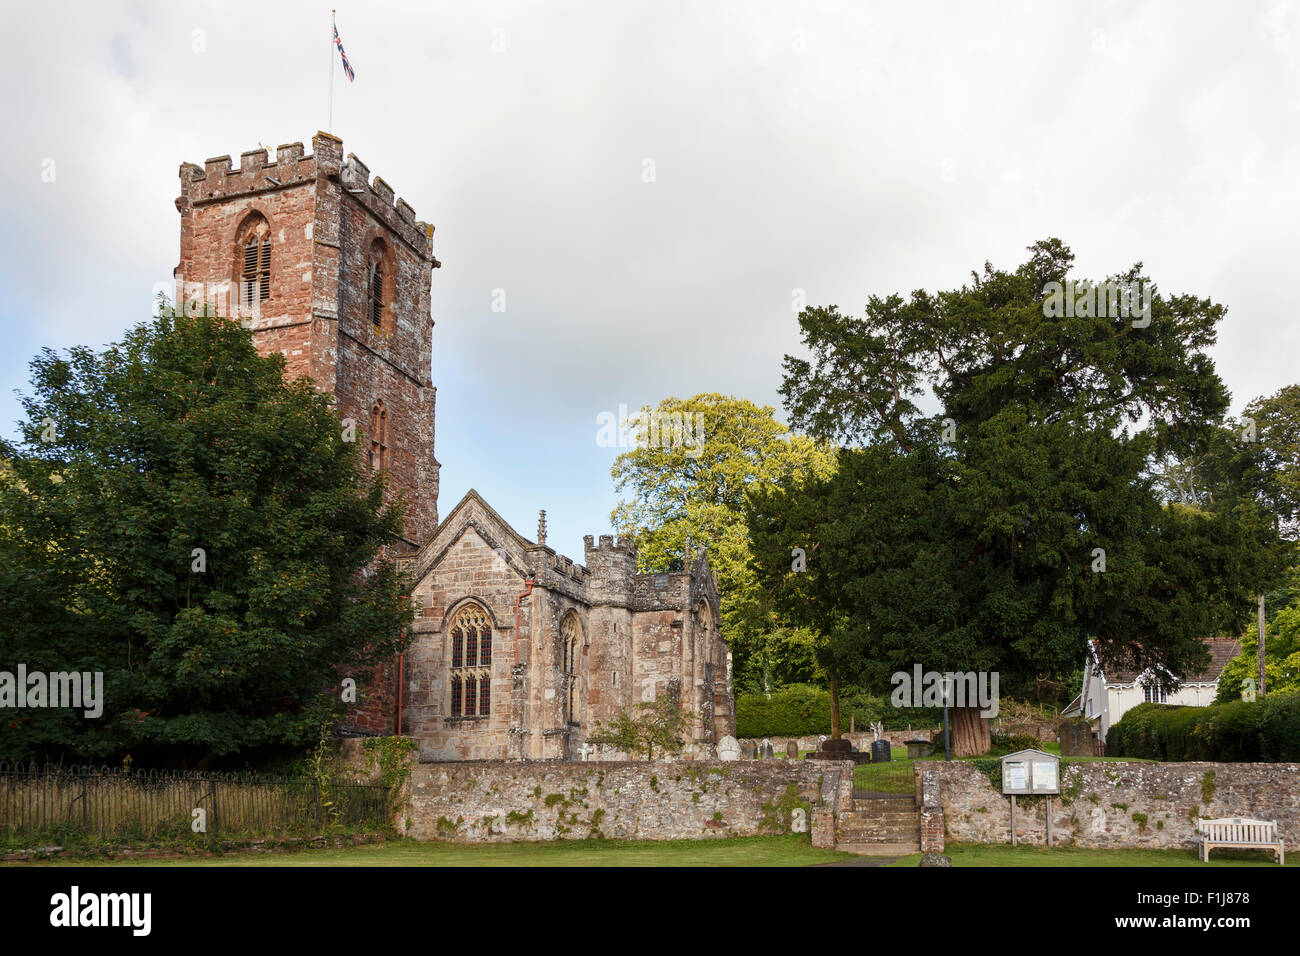 'The Church of the Holy Ghost' Crowcombe, at the foot of the Quantock Hills. - Stock Image